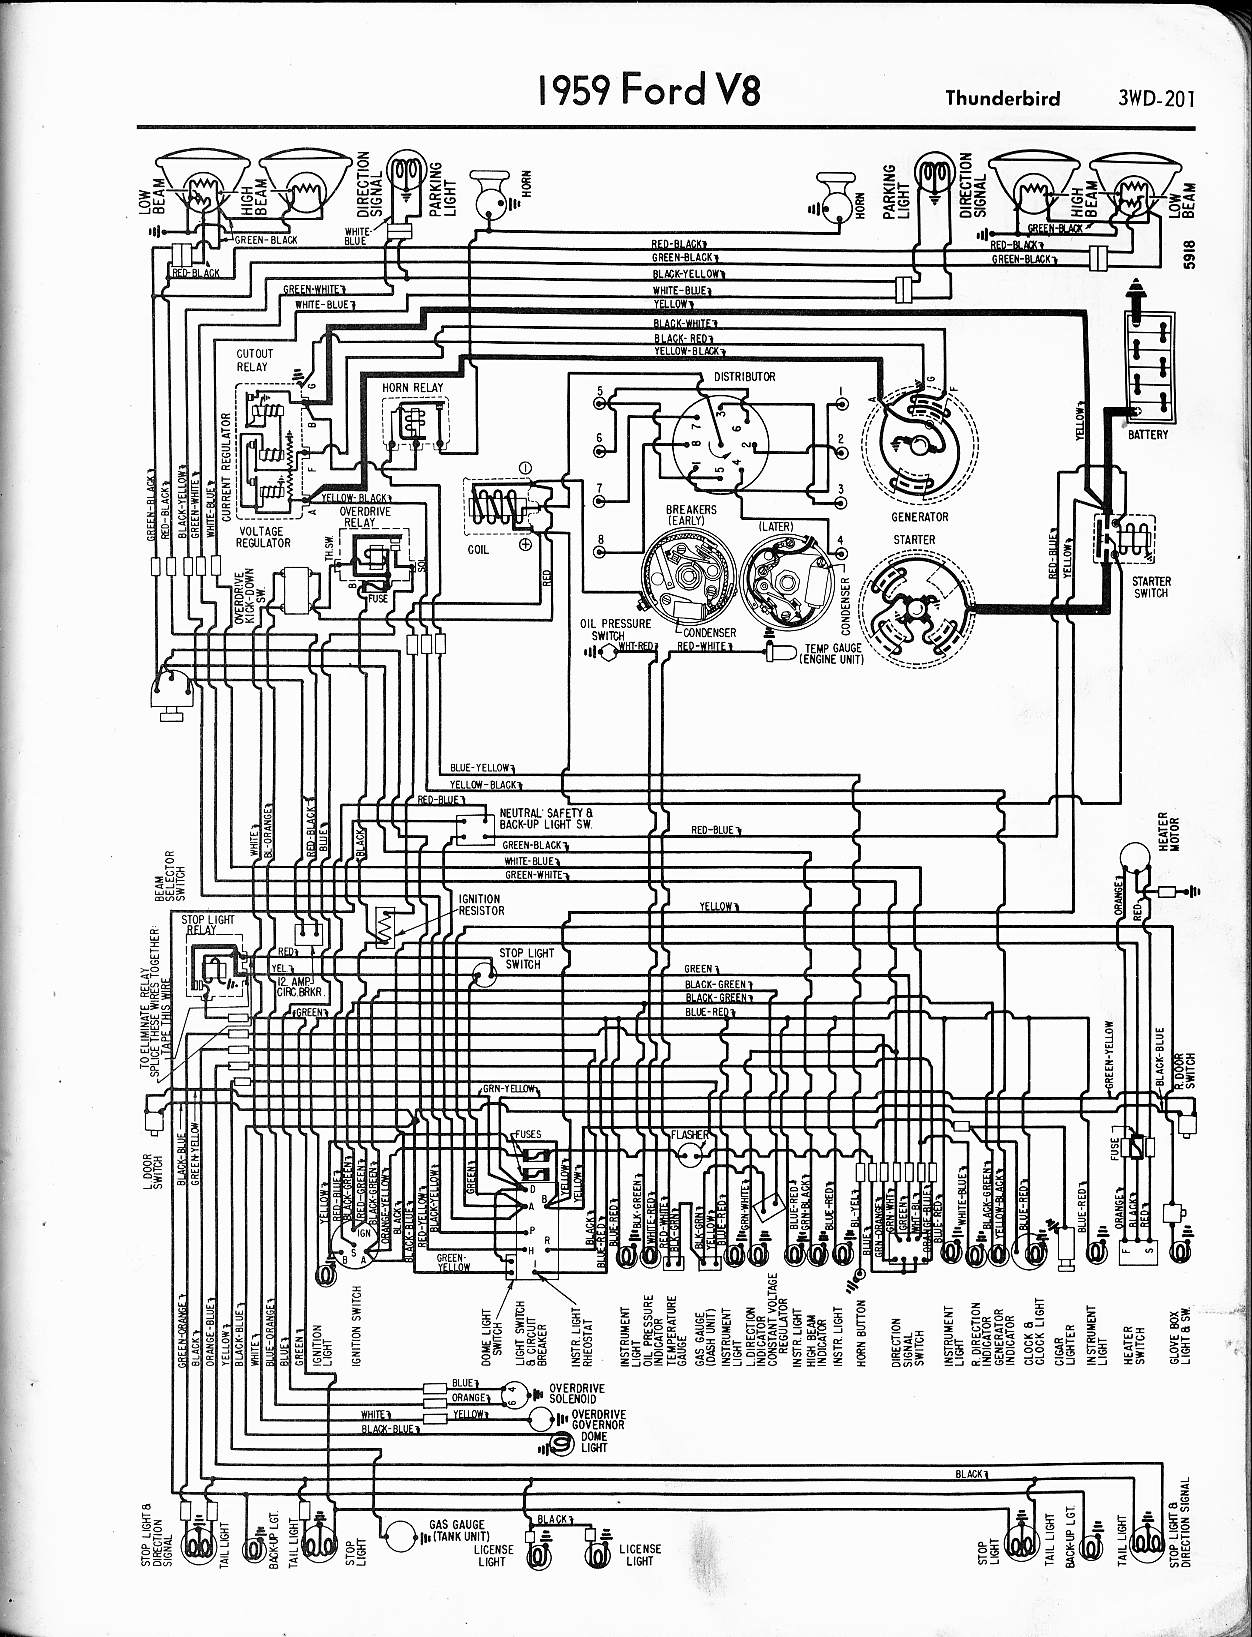 57 65 Ford Wiring Diagrams Extension Cord Quad Box Diagram 1959 Thunderbird